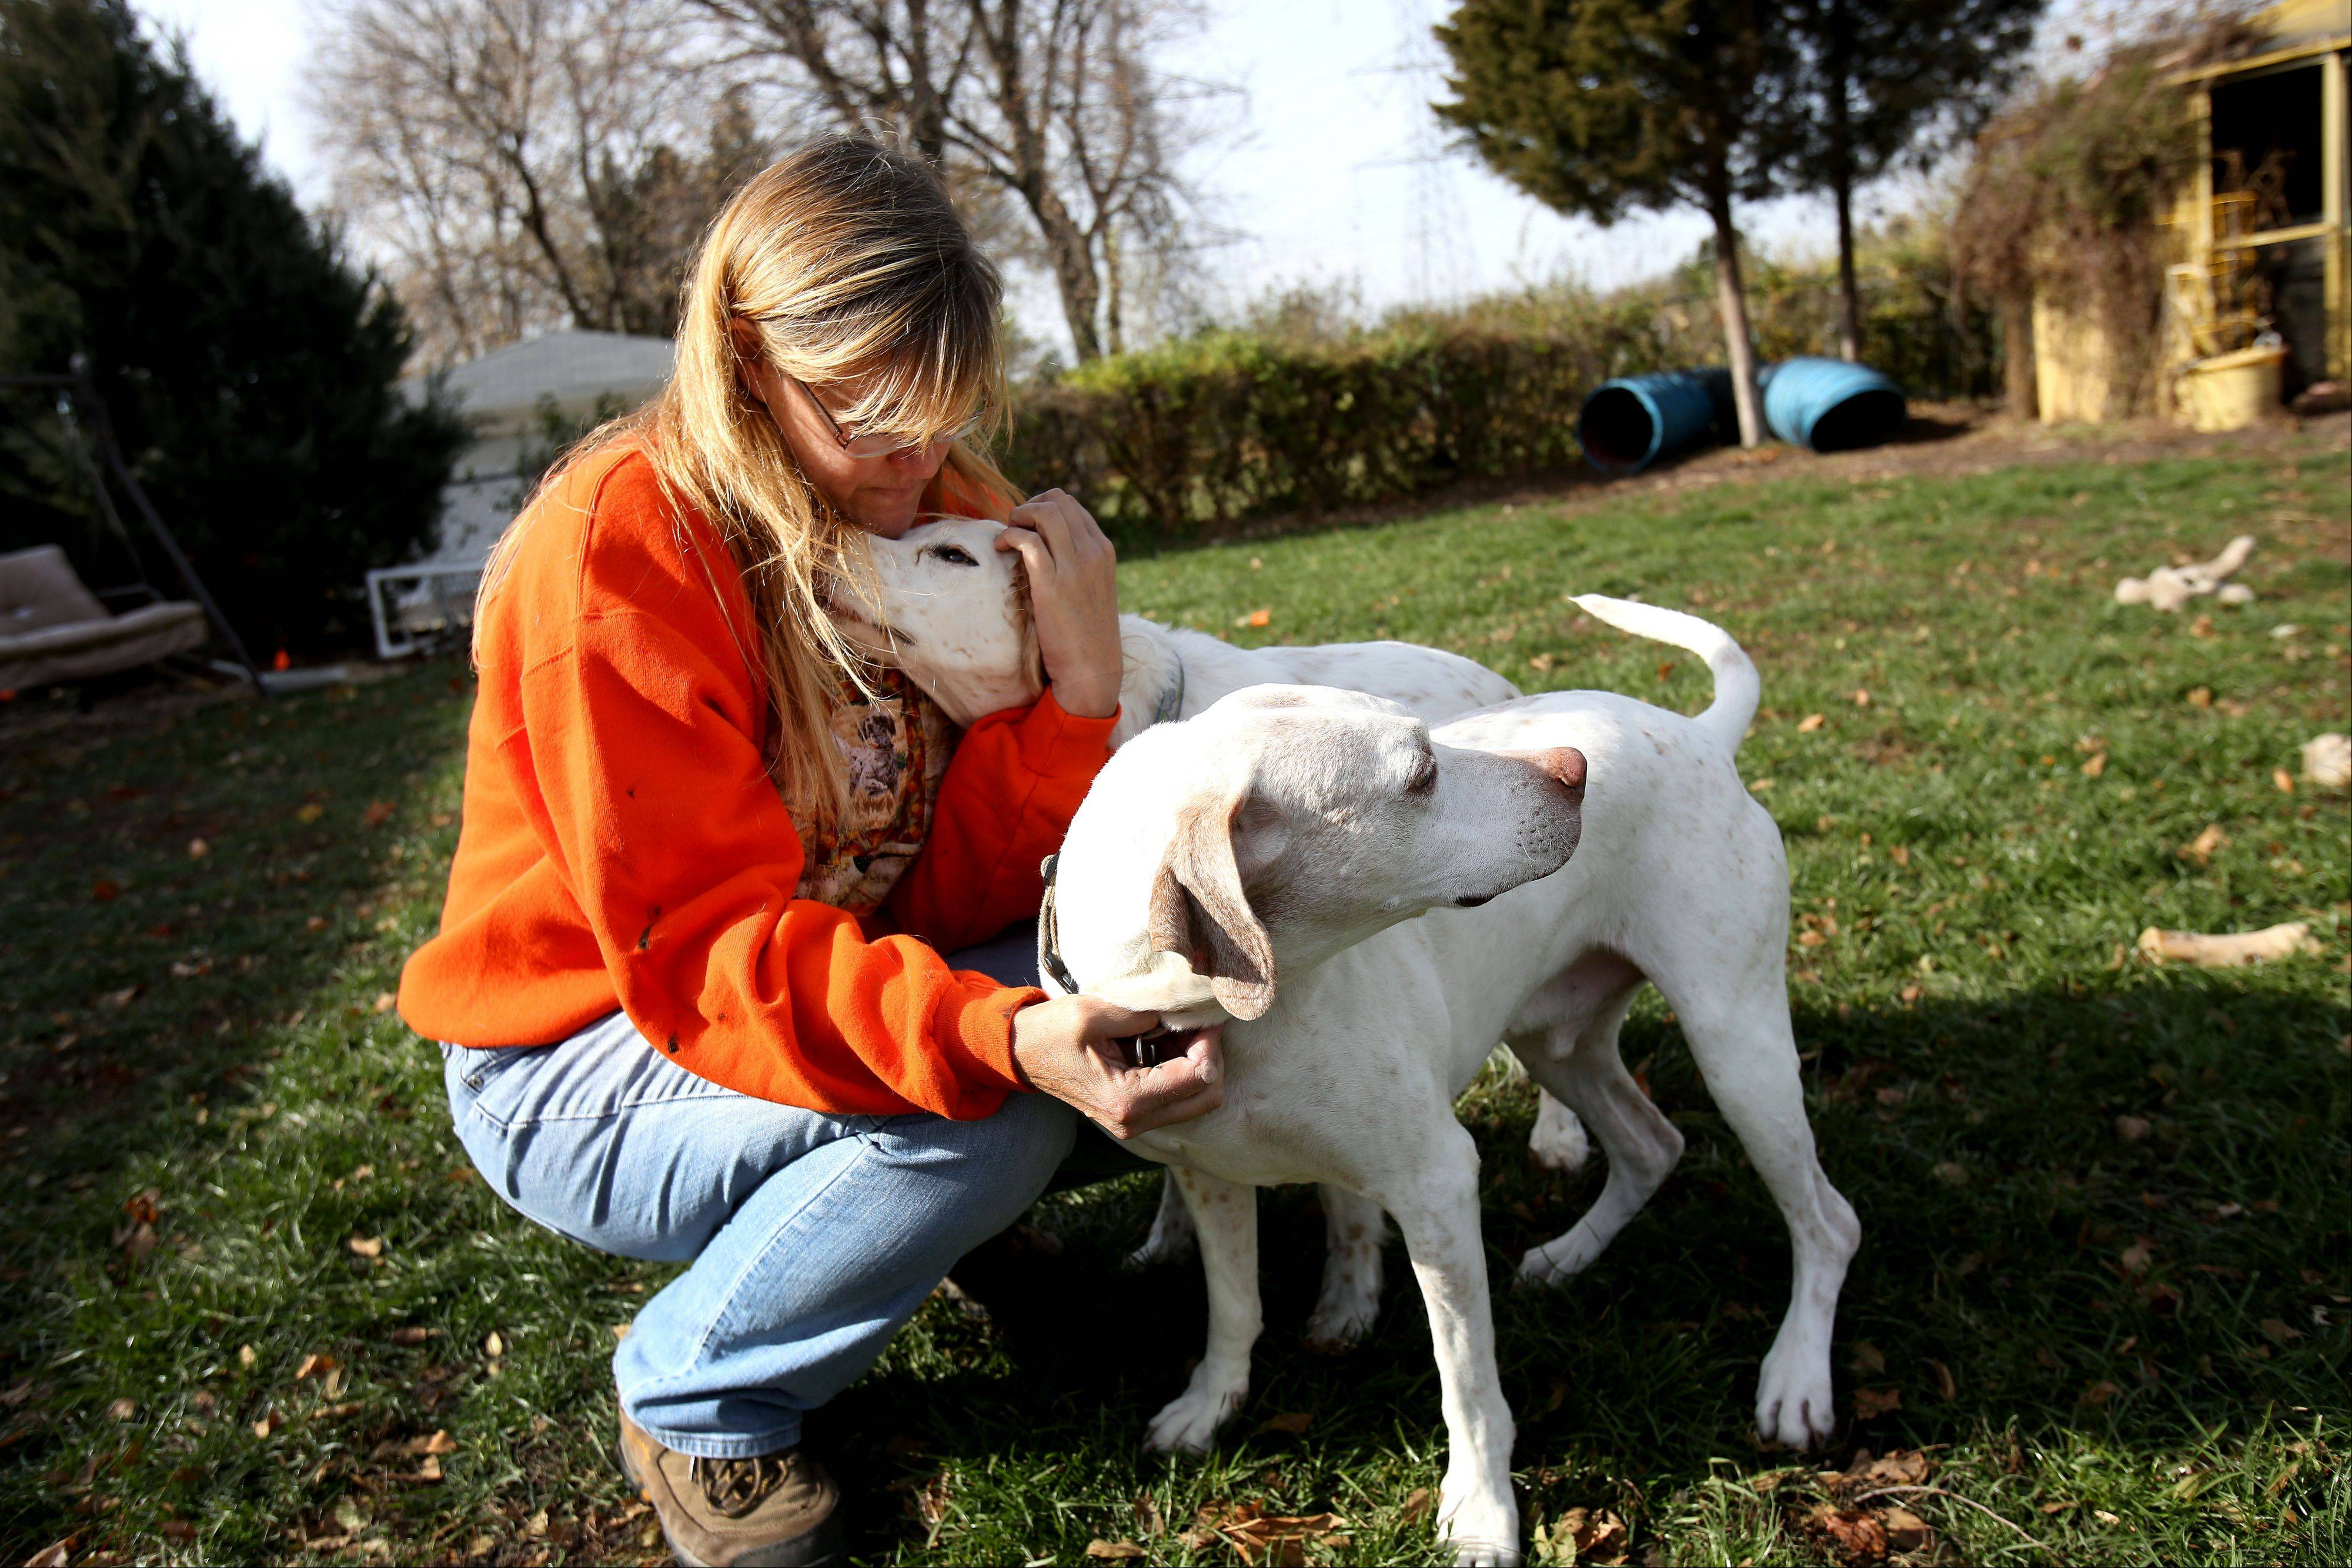 Lisa Spakowski, president of Illinois Birddog Rescue, spends time with Dantes and Lani, two of her five dogs.